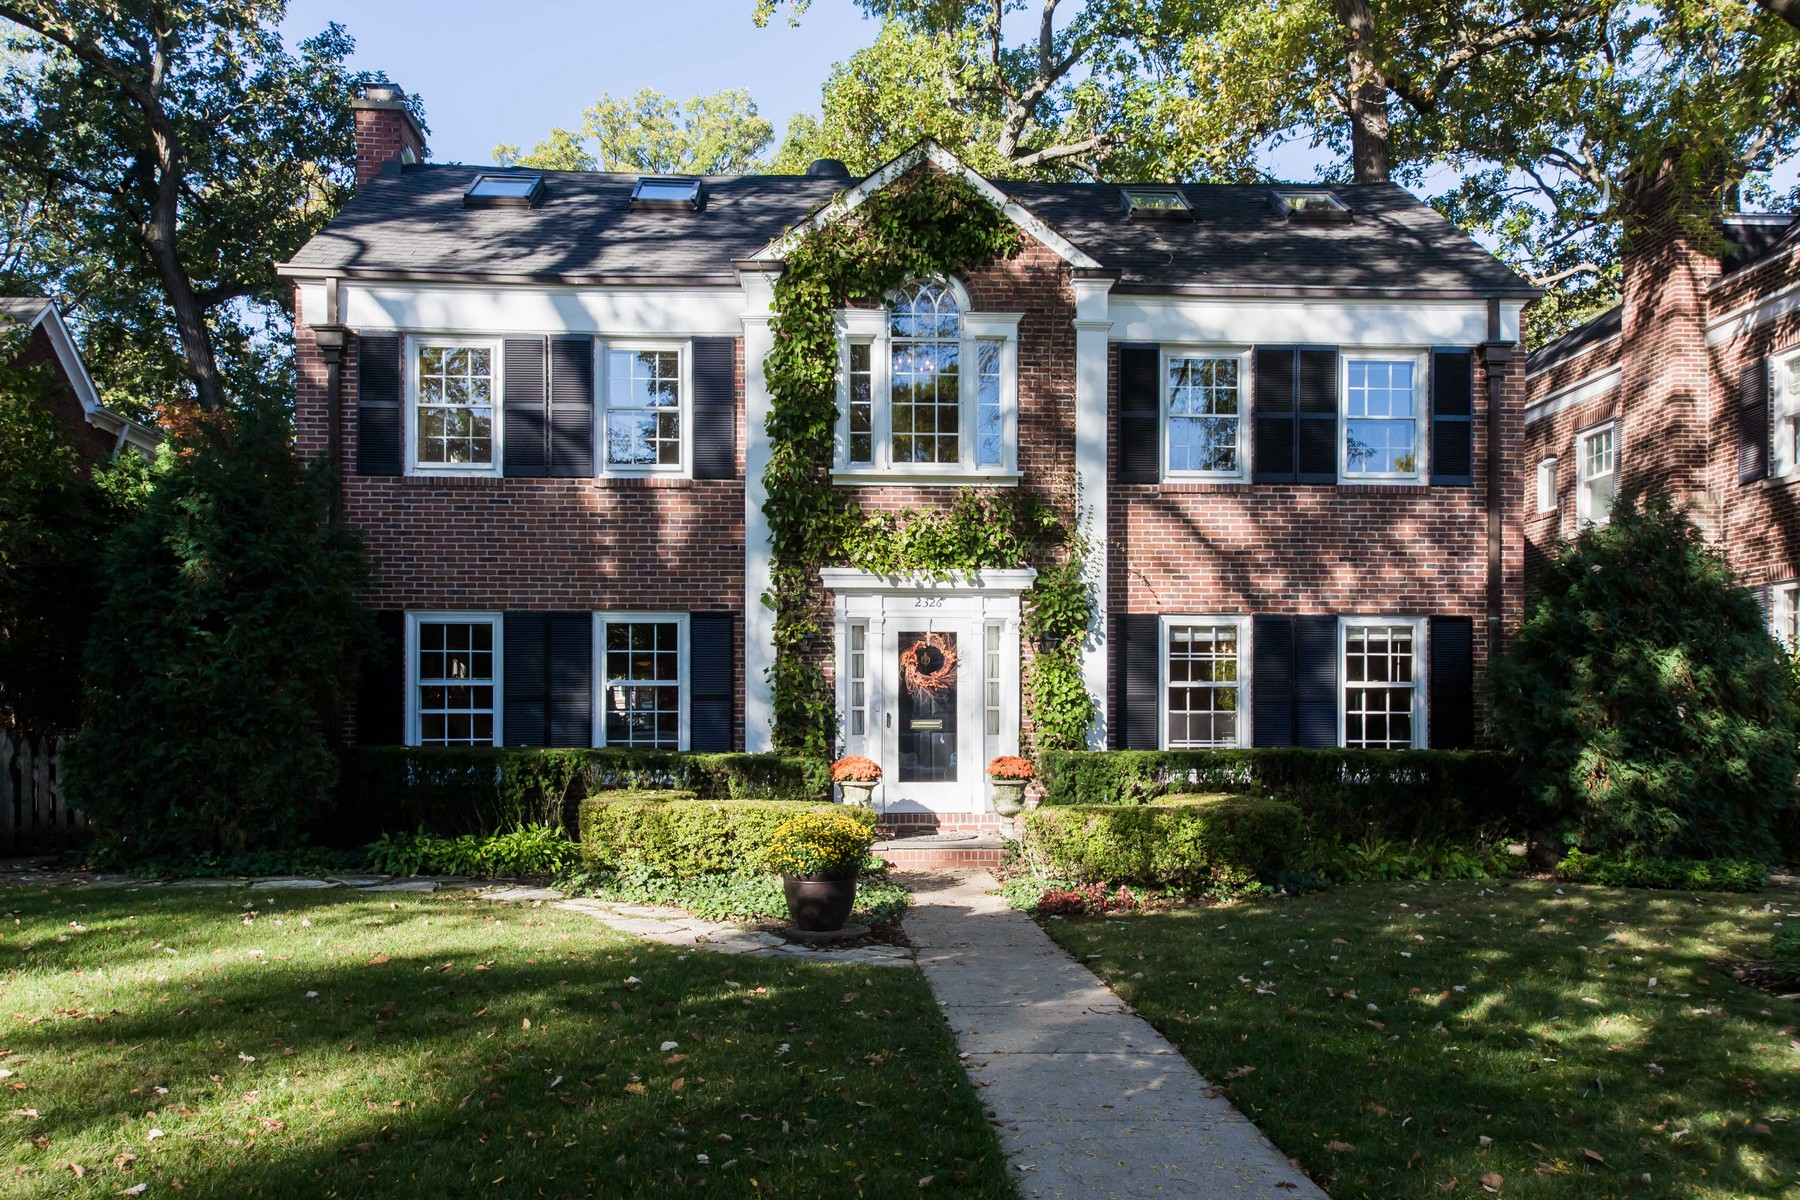 Single Family Home for Sale at Outstanding Three Story Colonial 2326 Central Park Avenue, Evanston, Illinois, 60201 United States